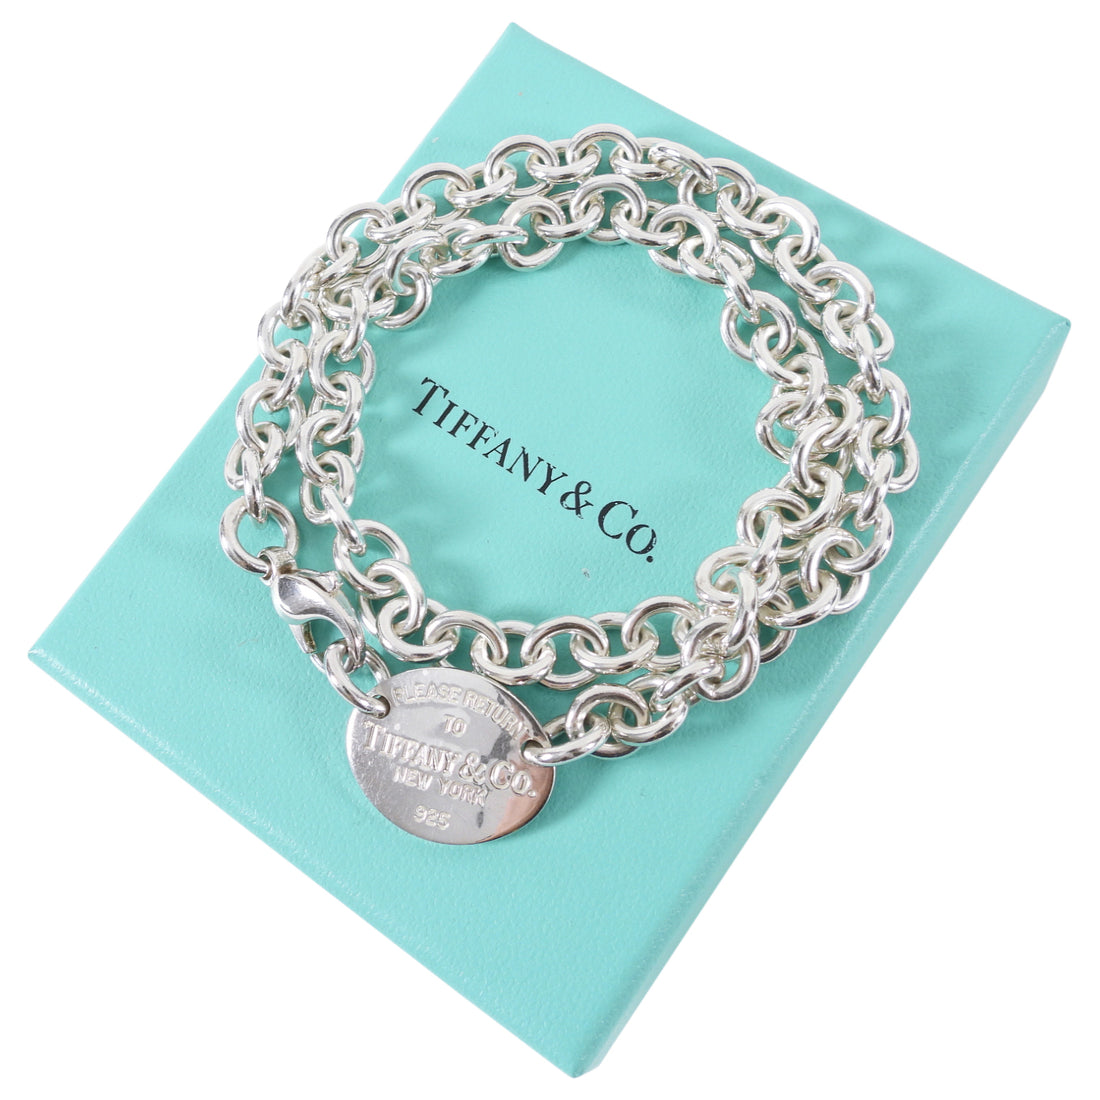 Tiffany & Co. Sterling Silver Oval Tag Return to Tiffany Necklace